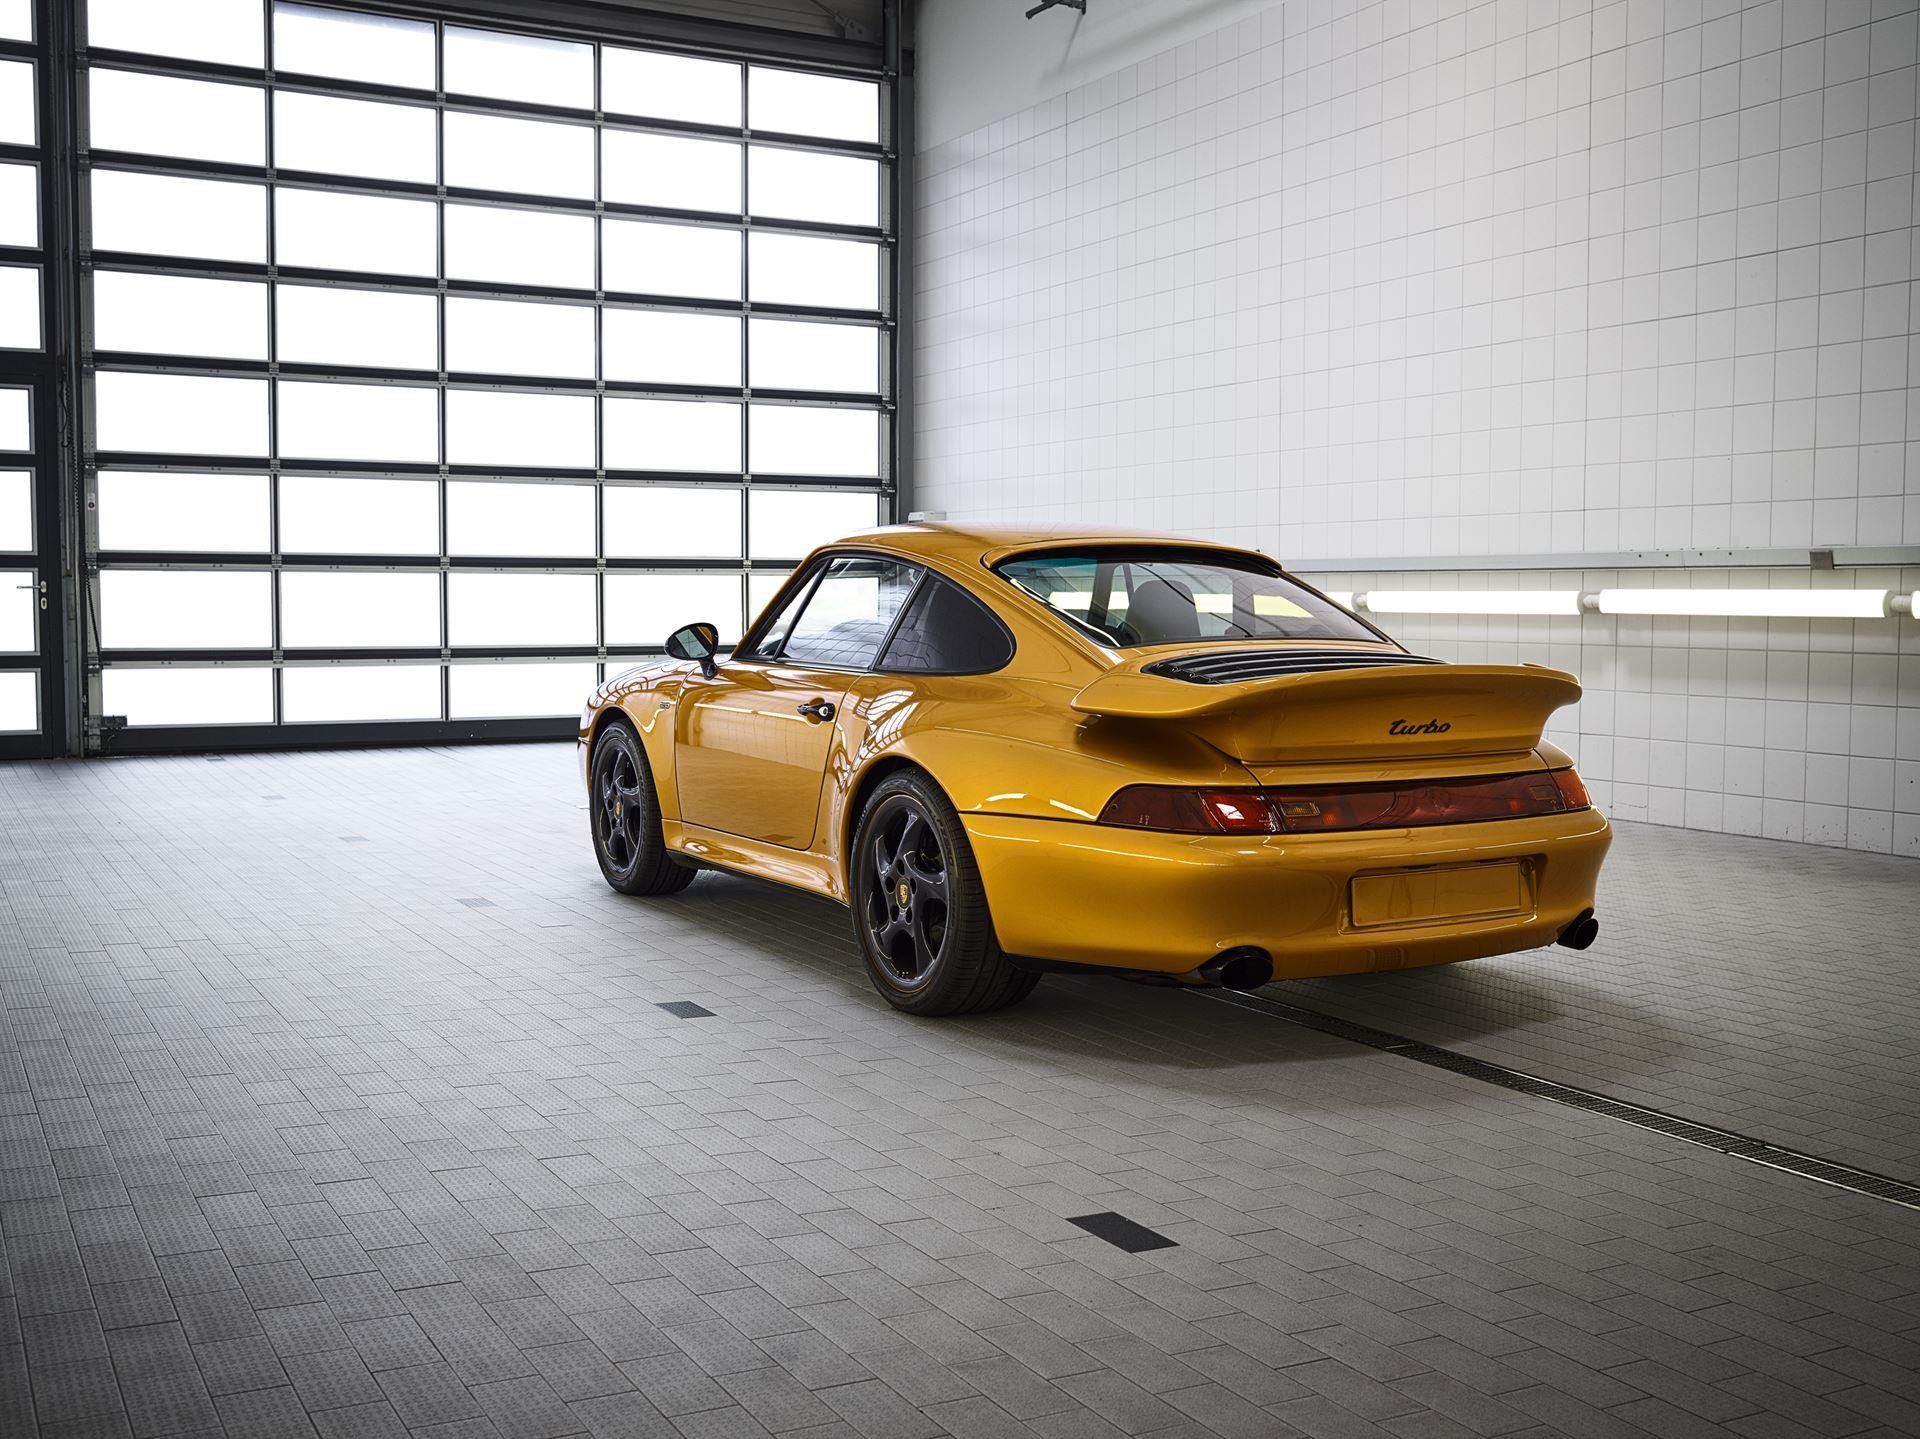 Porsche 911 Turbo Classic Series Project Gold photo